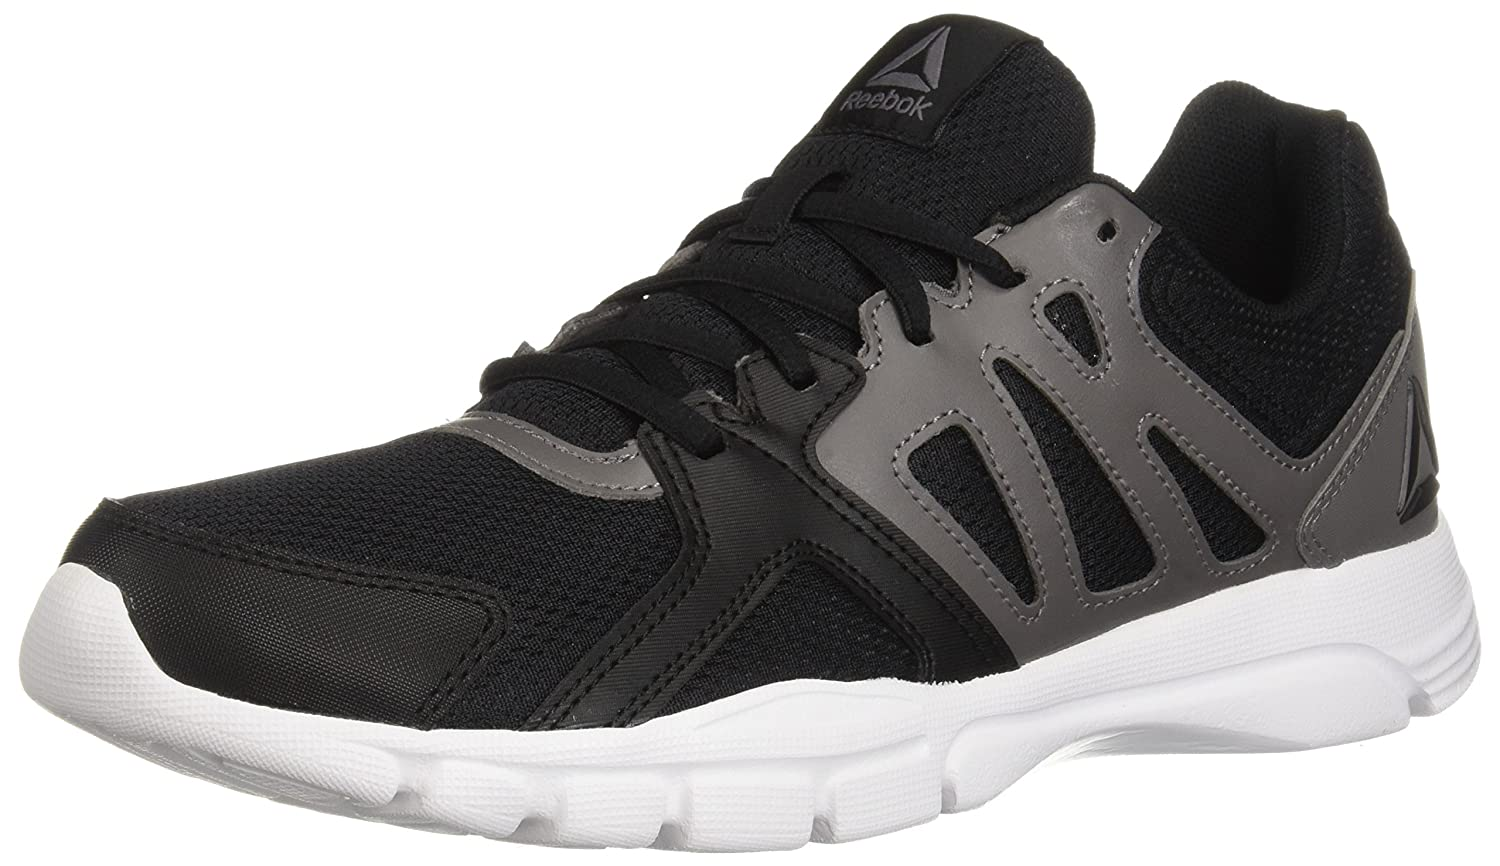 dc21a3296a2a25 Reebok Men s Trainfusion Nine 3.0 Cross Trainer